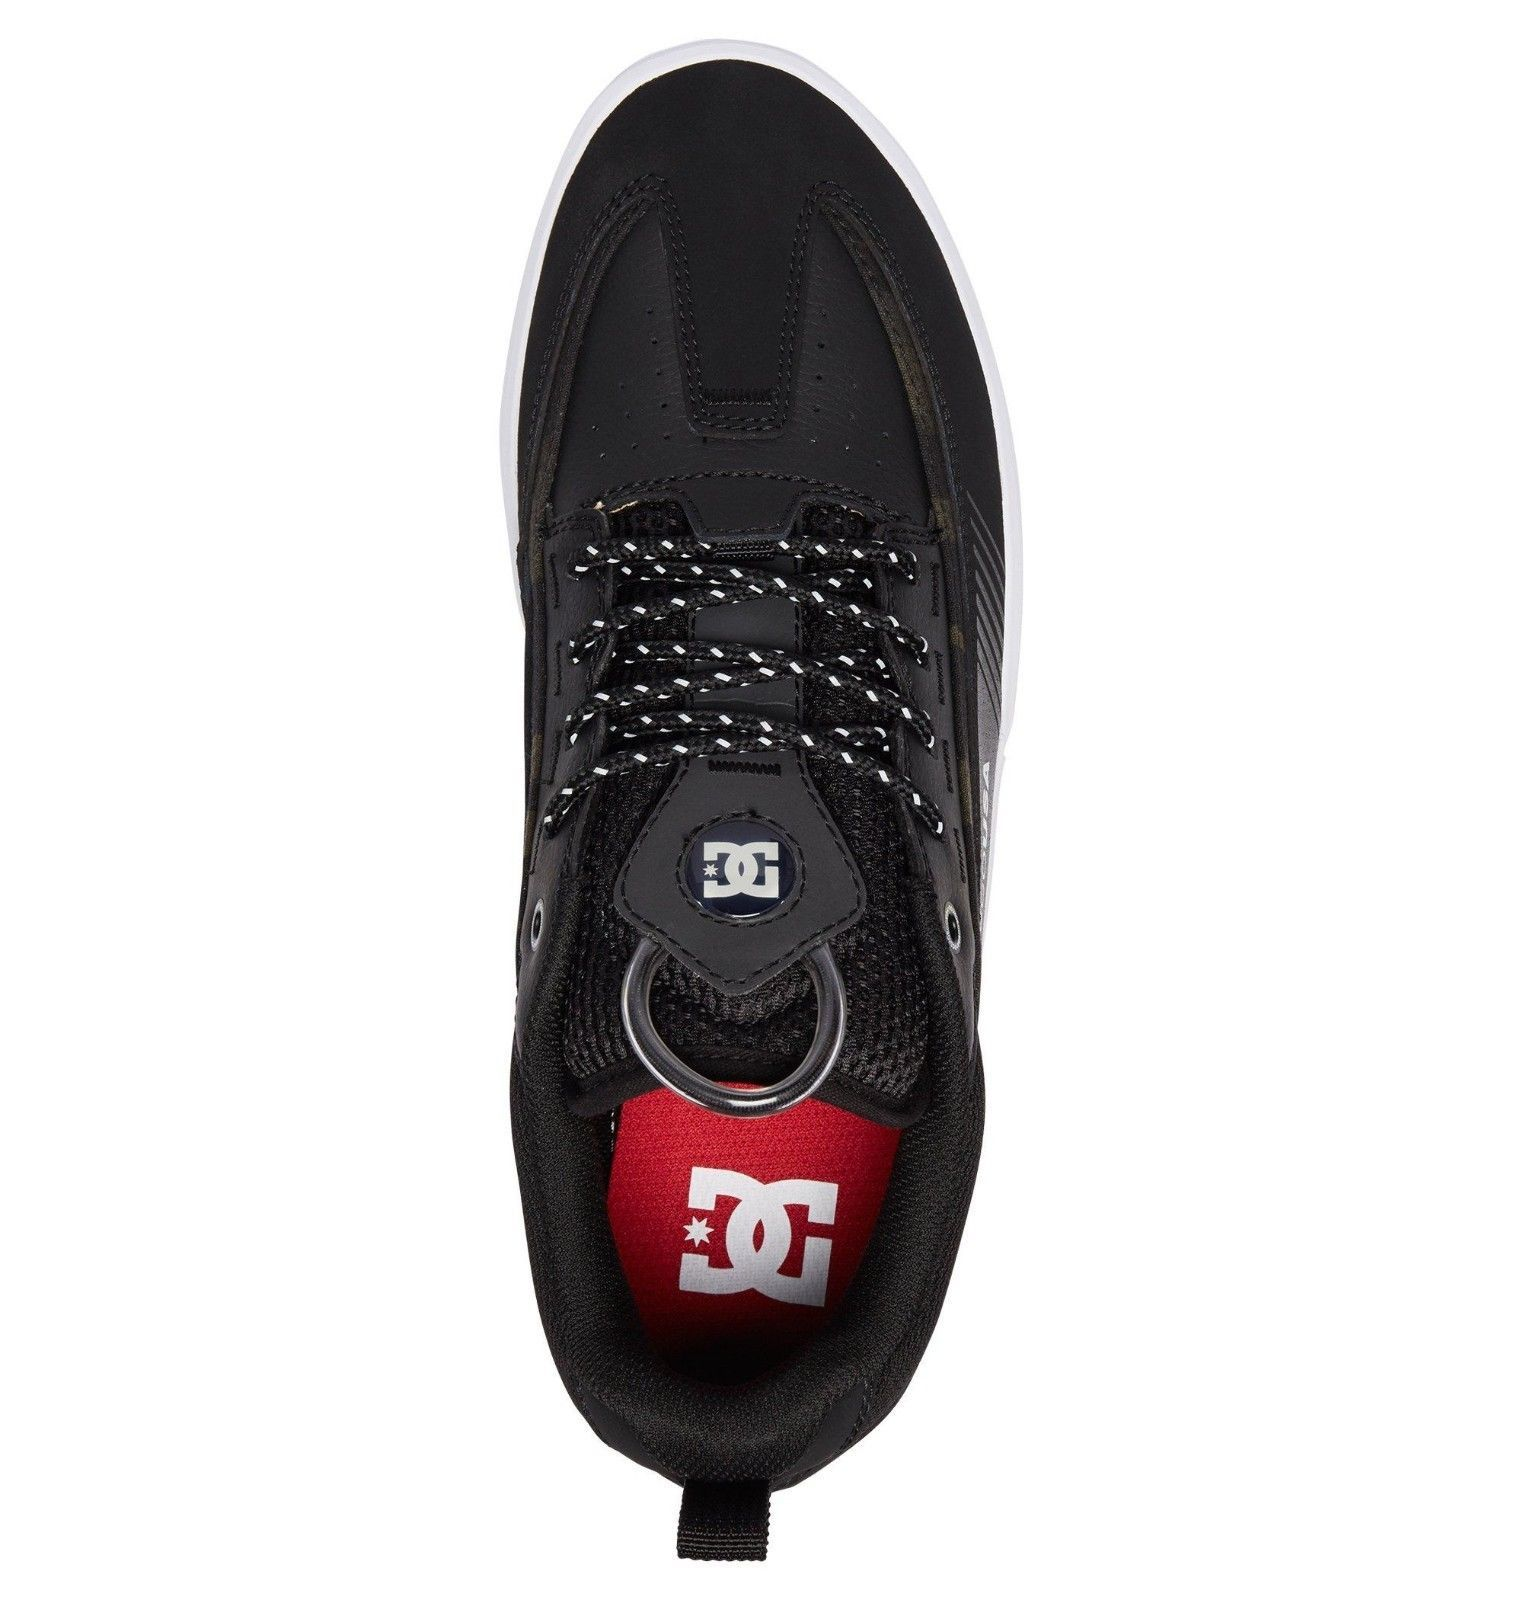 d064dad9893f DC SHOES MENS TRAINERS.NEW LEGACY 98 SLIM SE LEATHER SKATE SPORTS SHOES 8W  47 BL